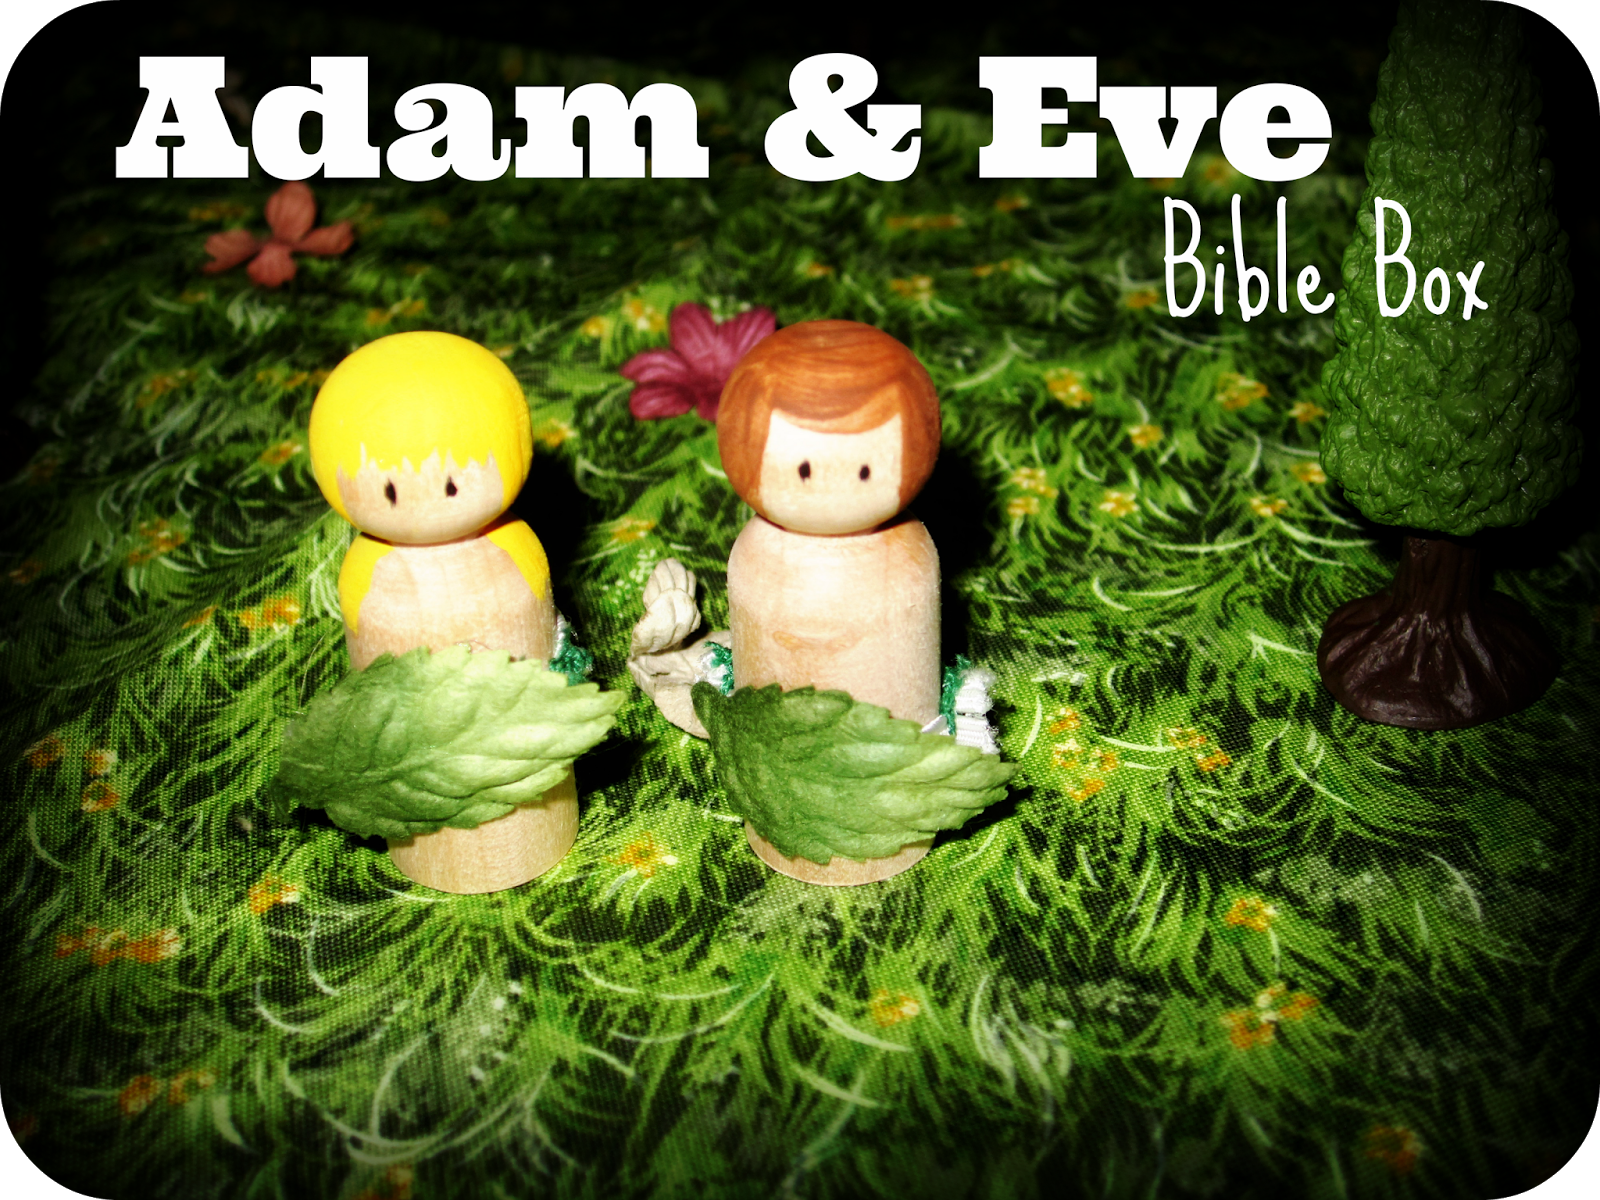 bible story box adam and eve fun idea to use little peg people